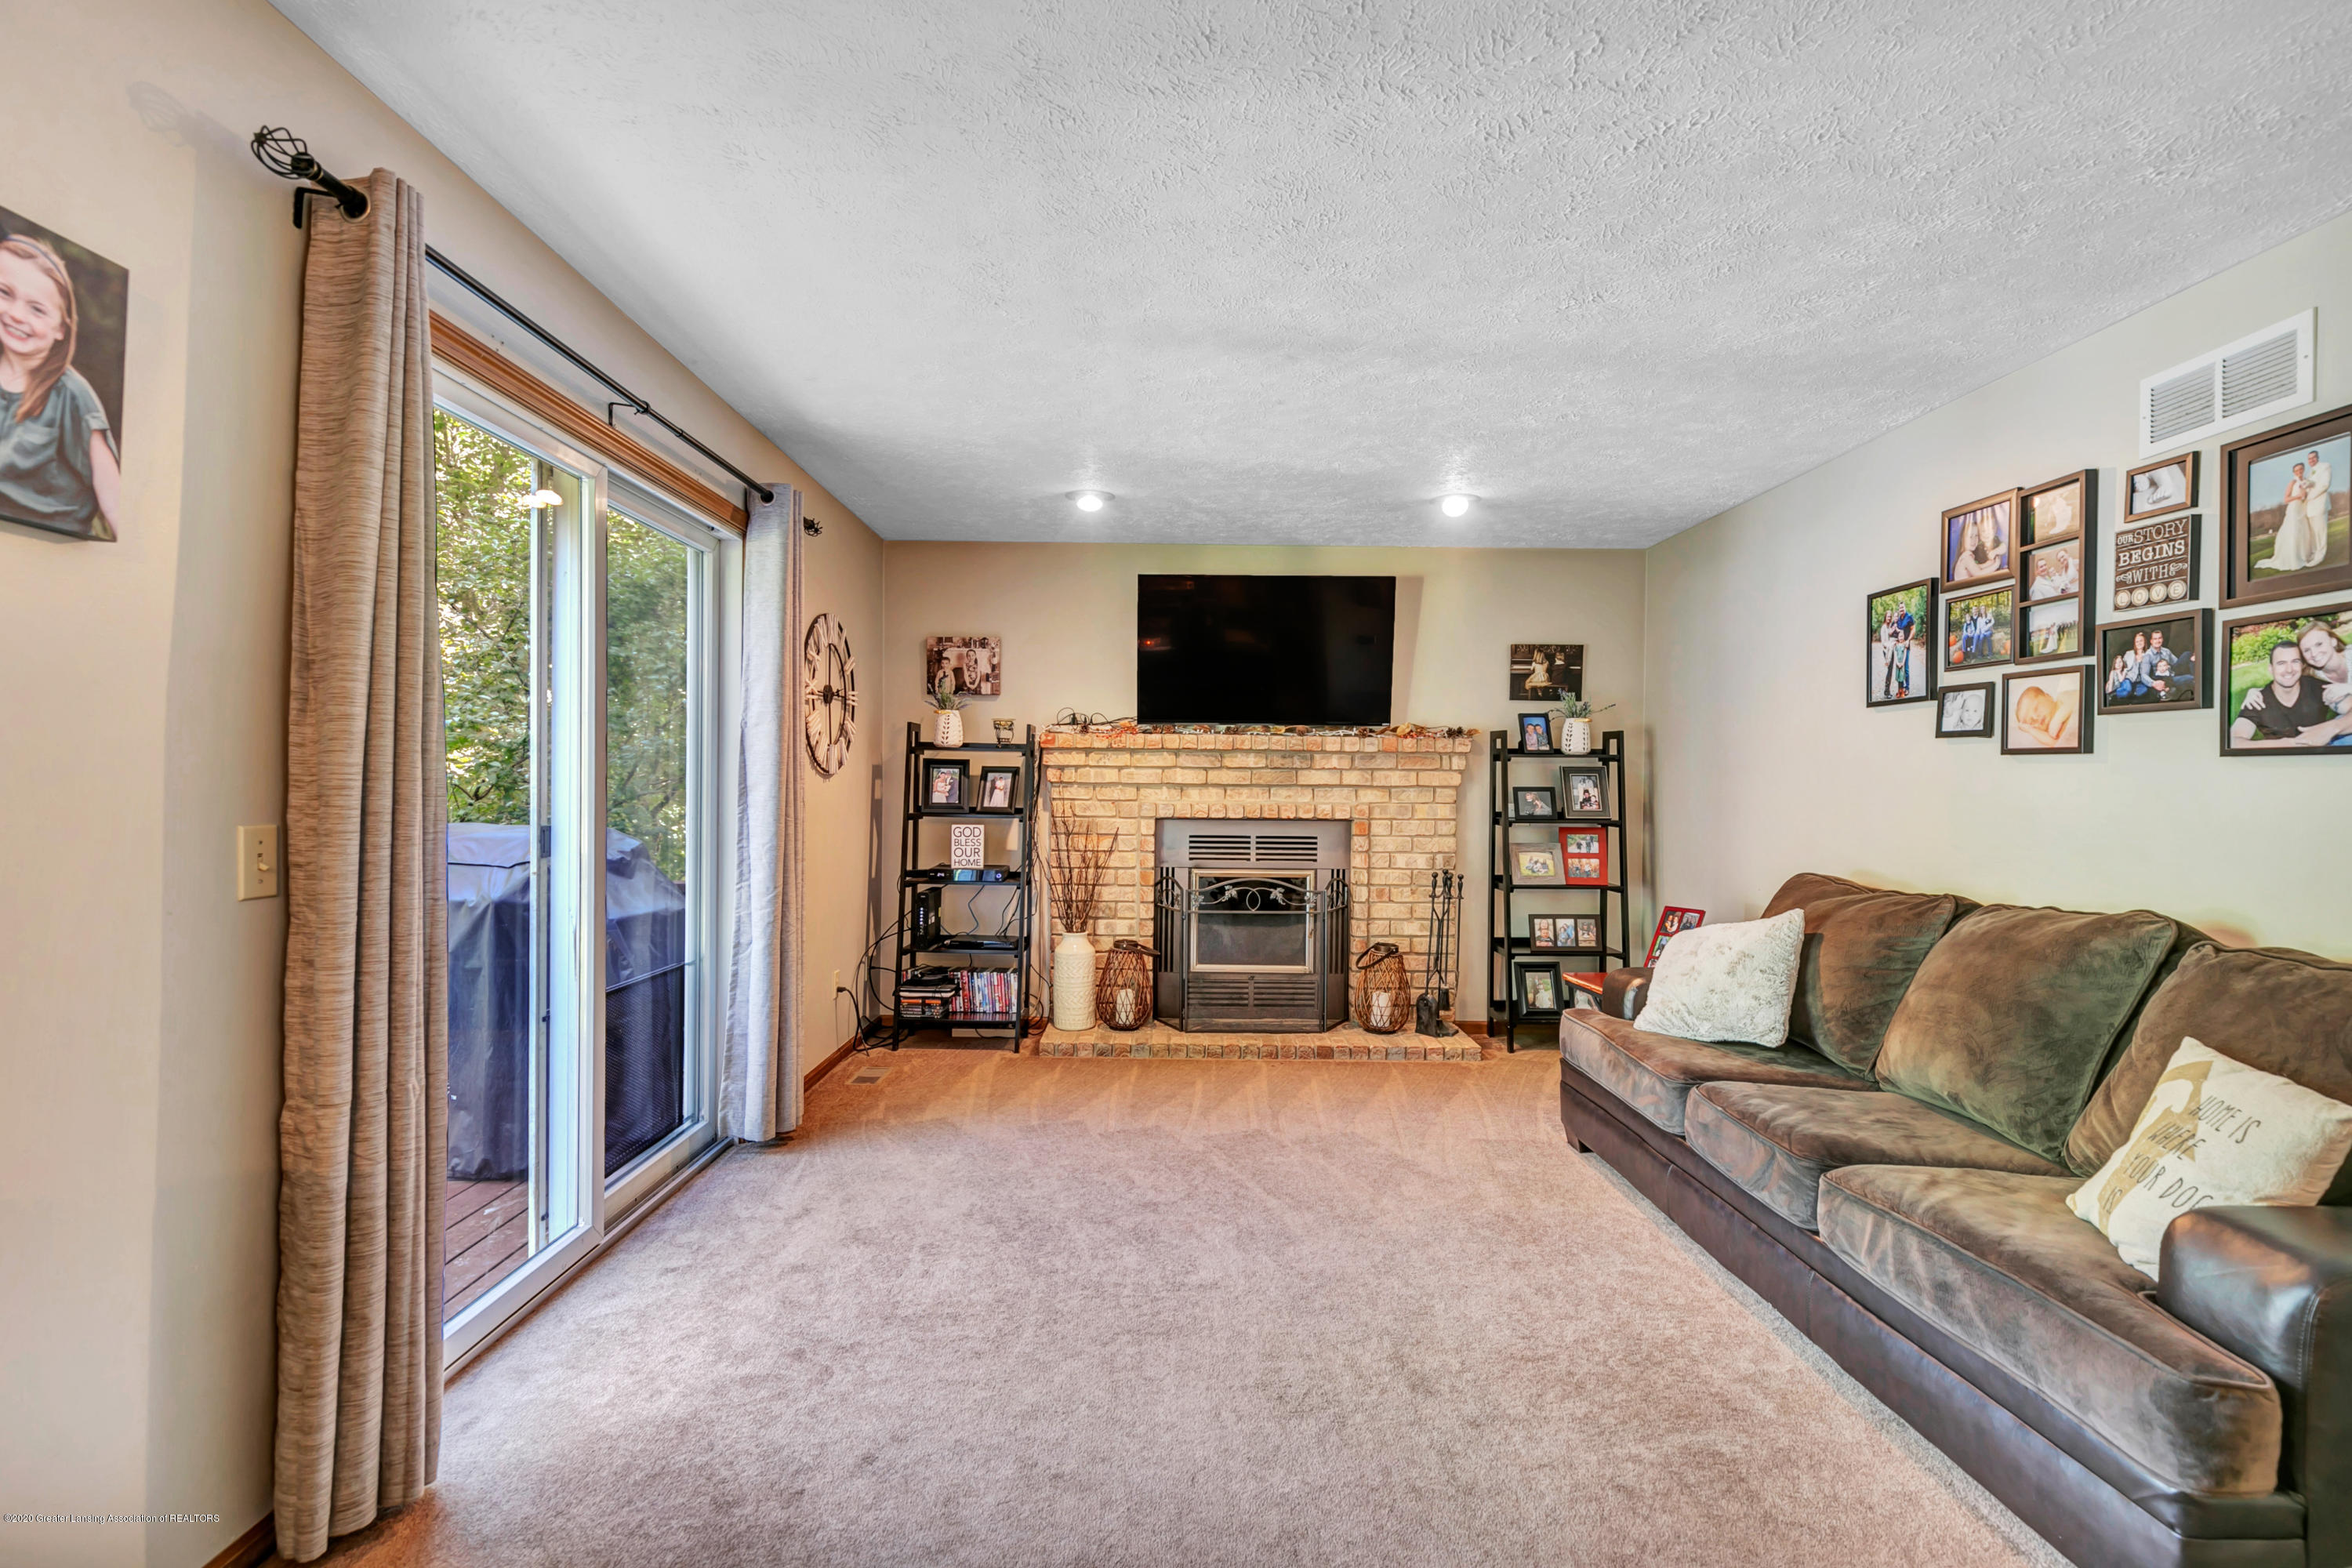 1301 Timber Creek Dr - 9I3A2500 - 6